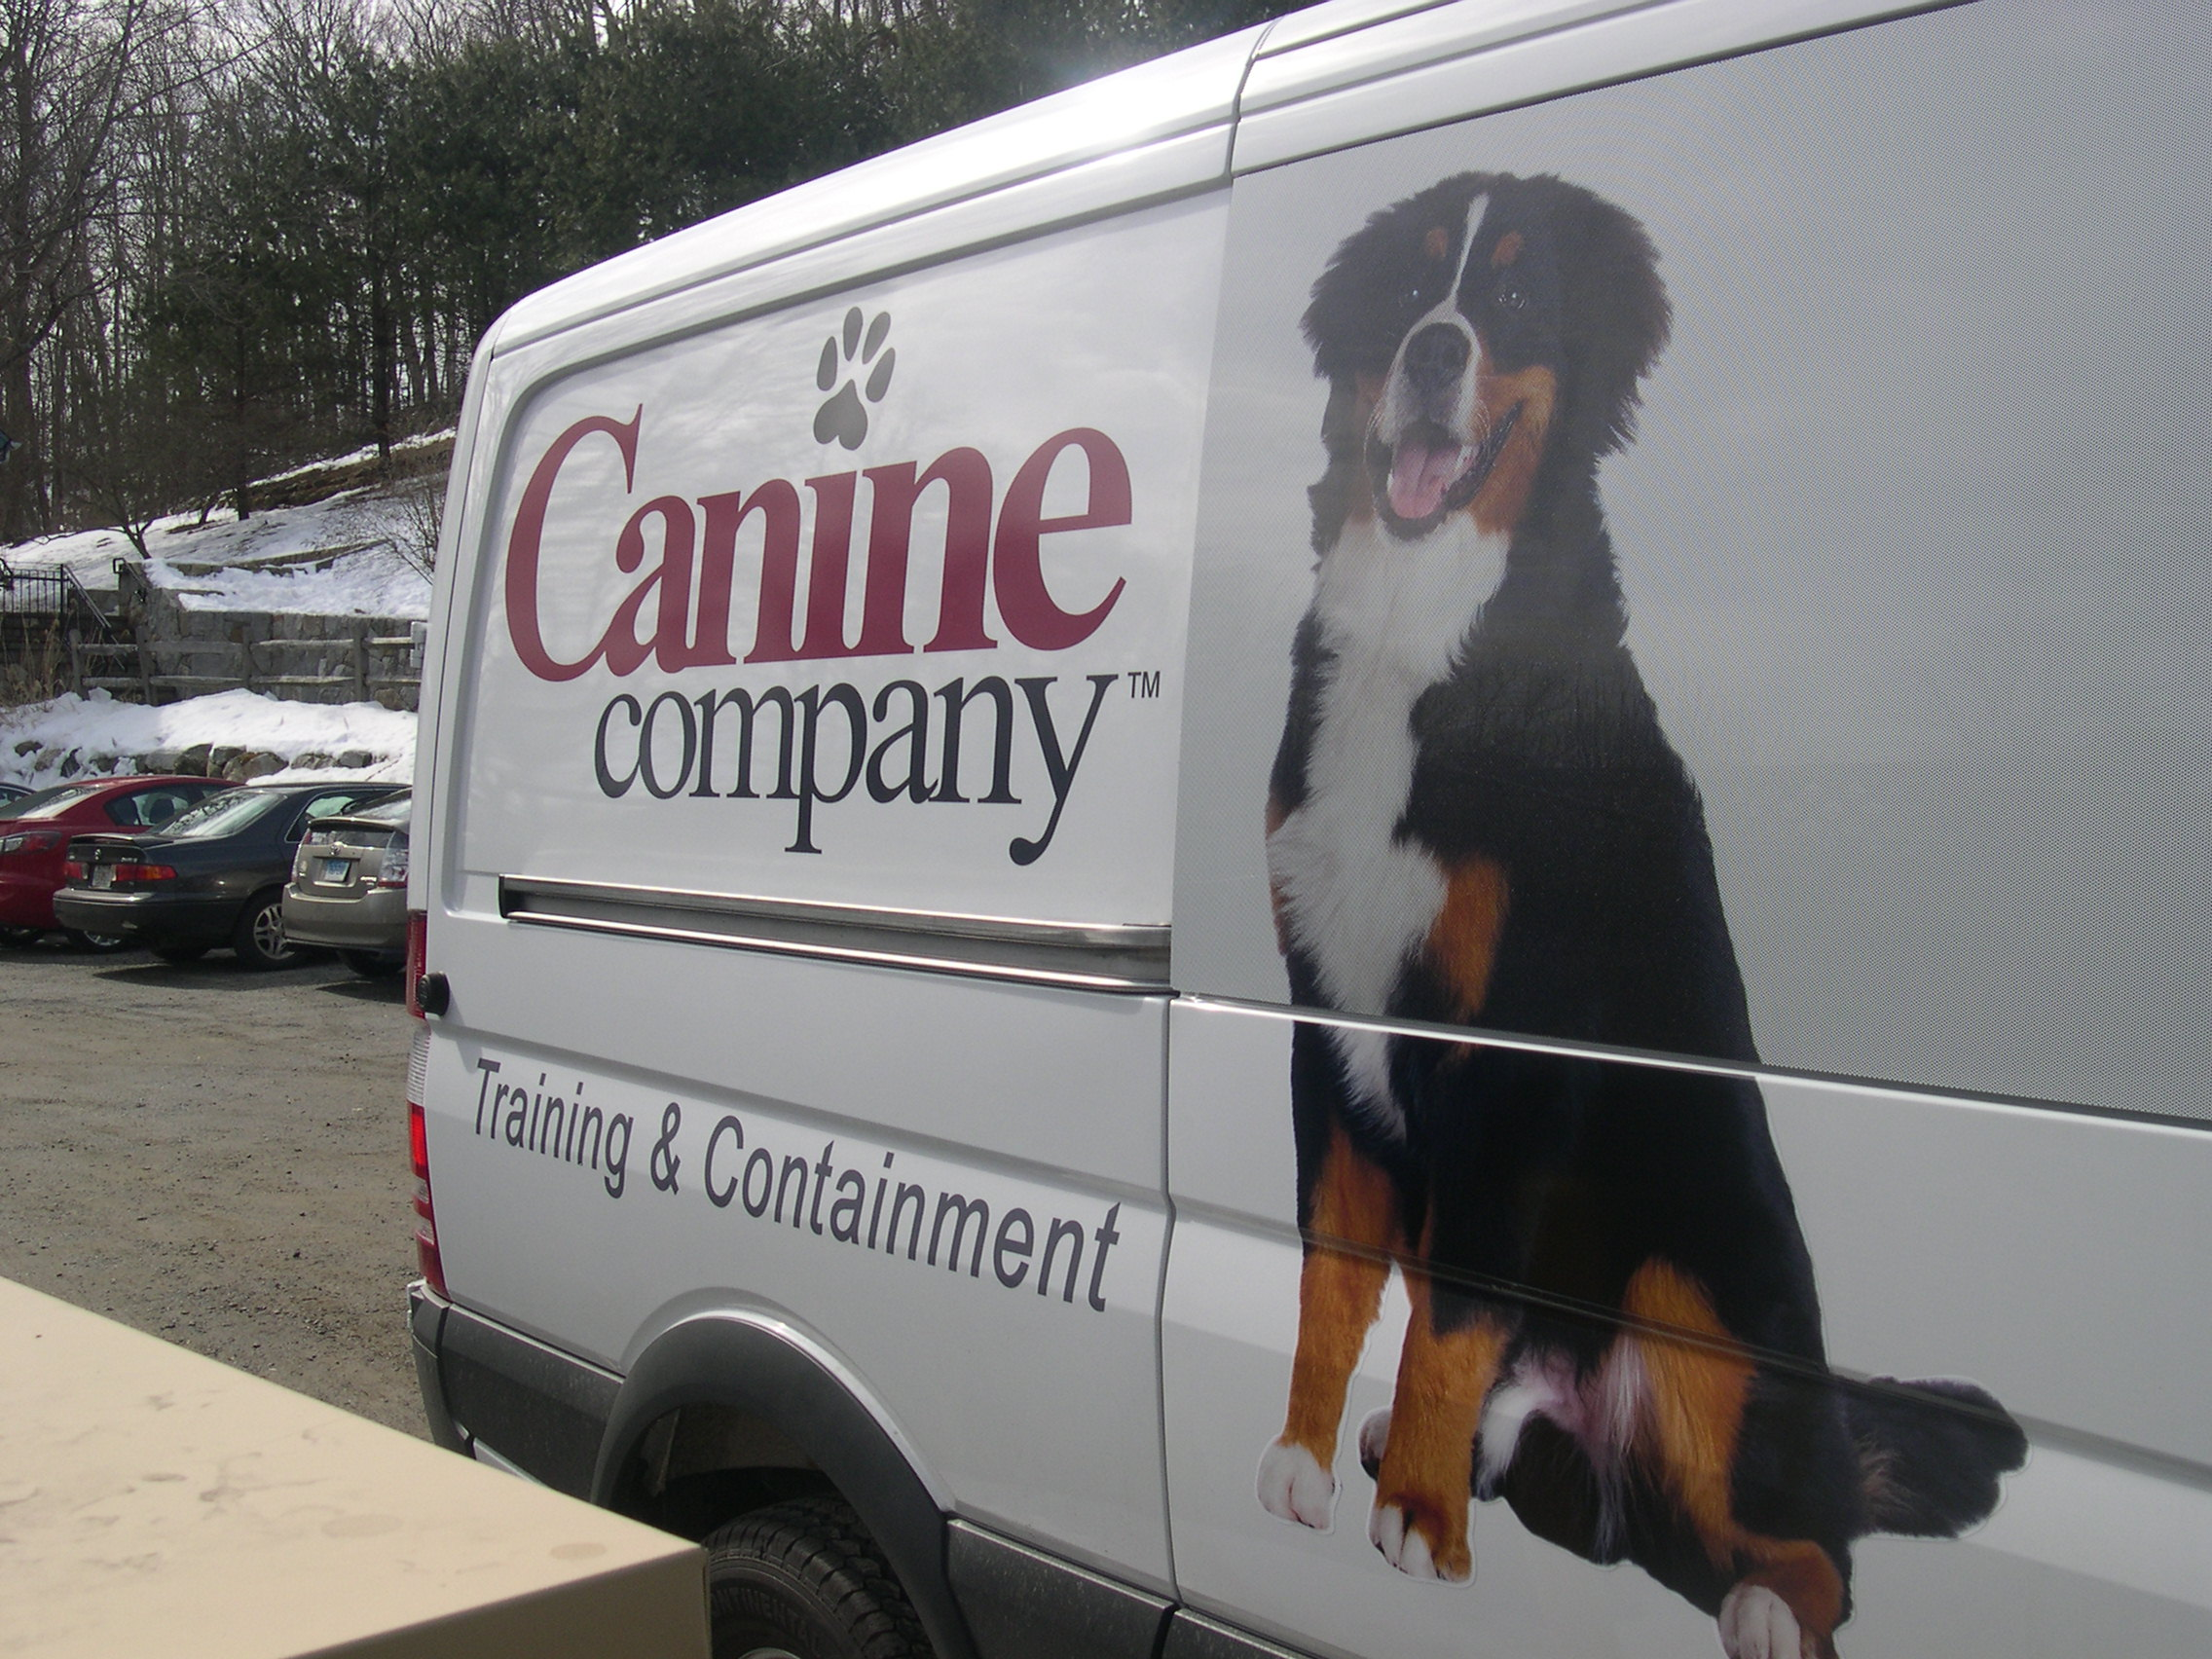 Canine Company Facilitates Rebranding With Car Decals From - Car window decals near meperforated car window decals signscom